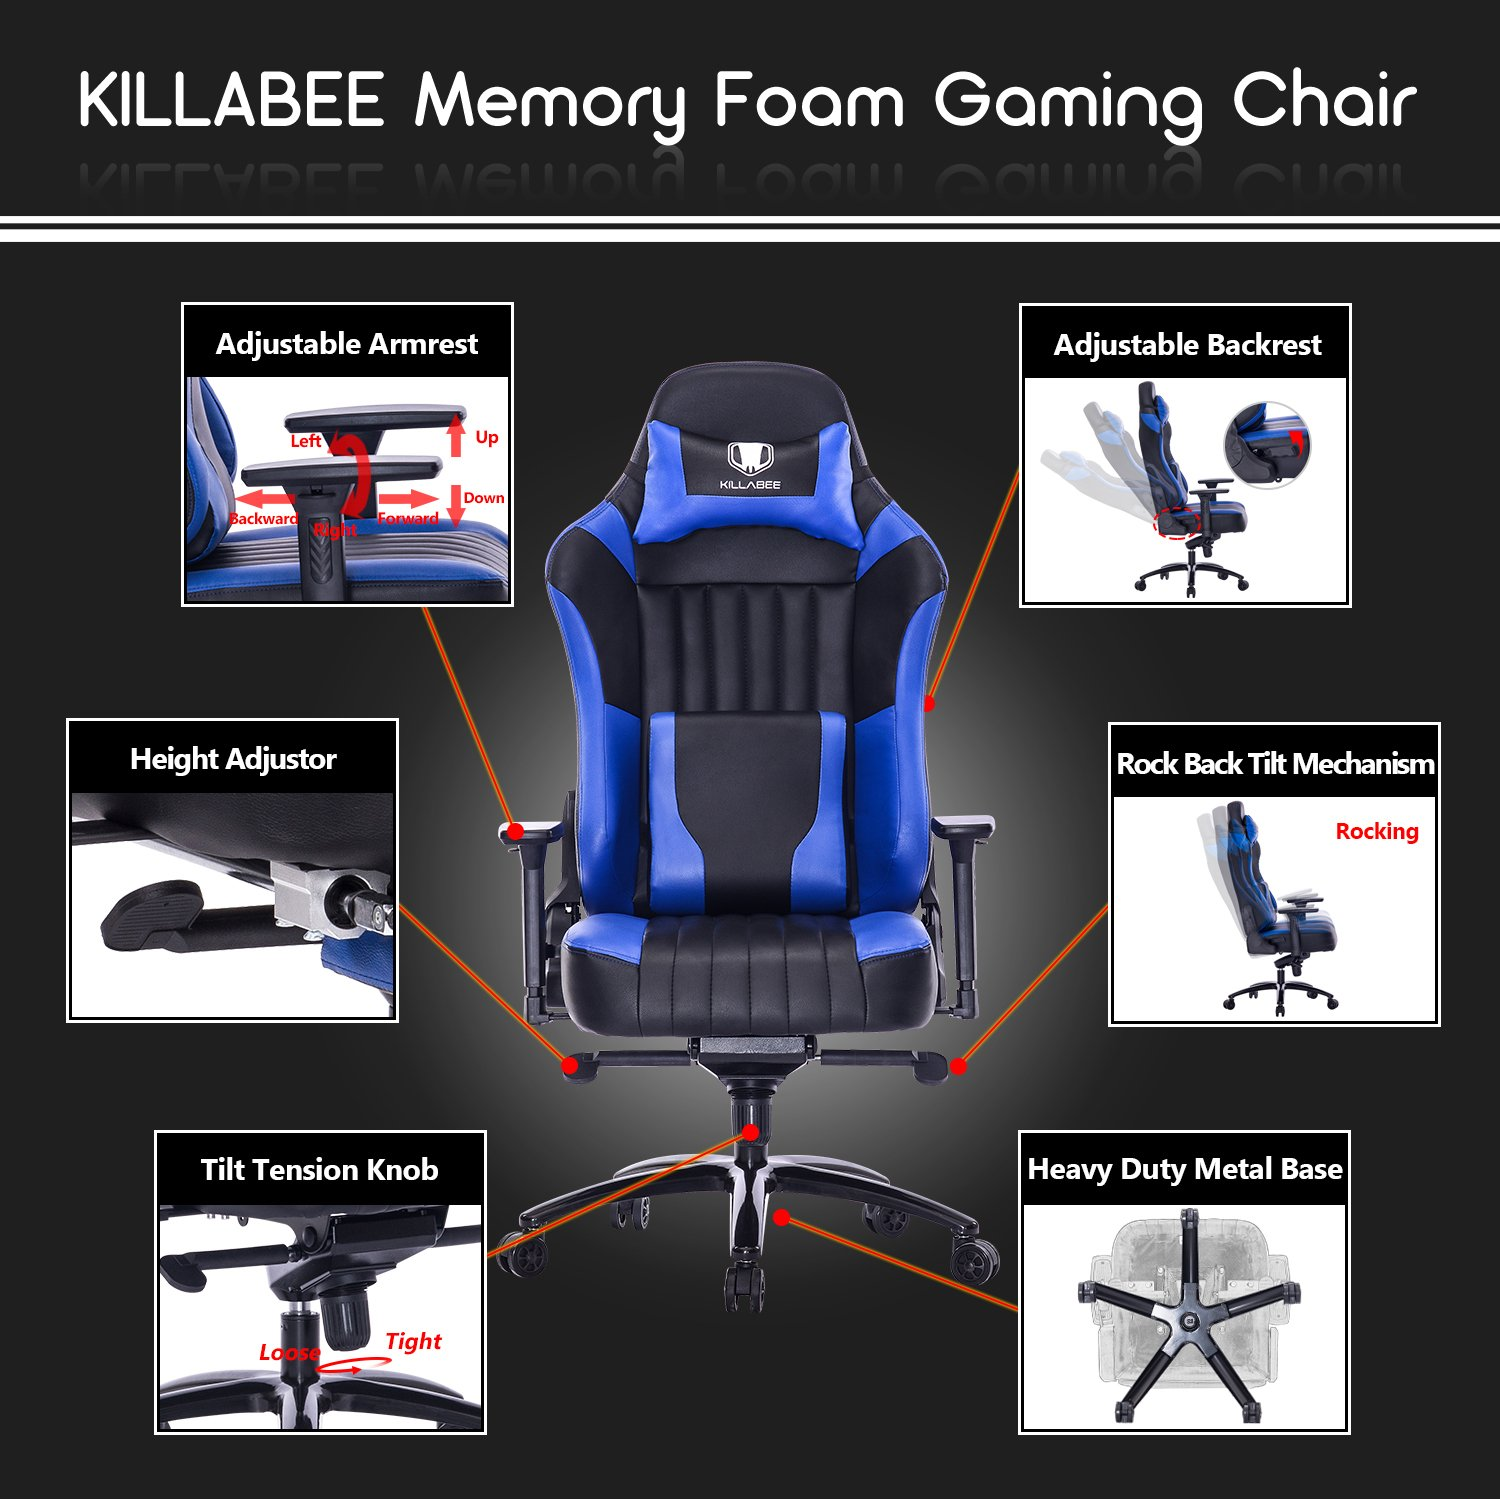 Sensational Killabee Big And Tall 400Lb Memory Foam Gaming Chair Andrewgaddart Wooden Chair Designs For Living Room Andrewgaddartcom